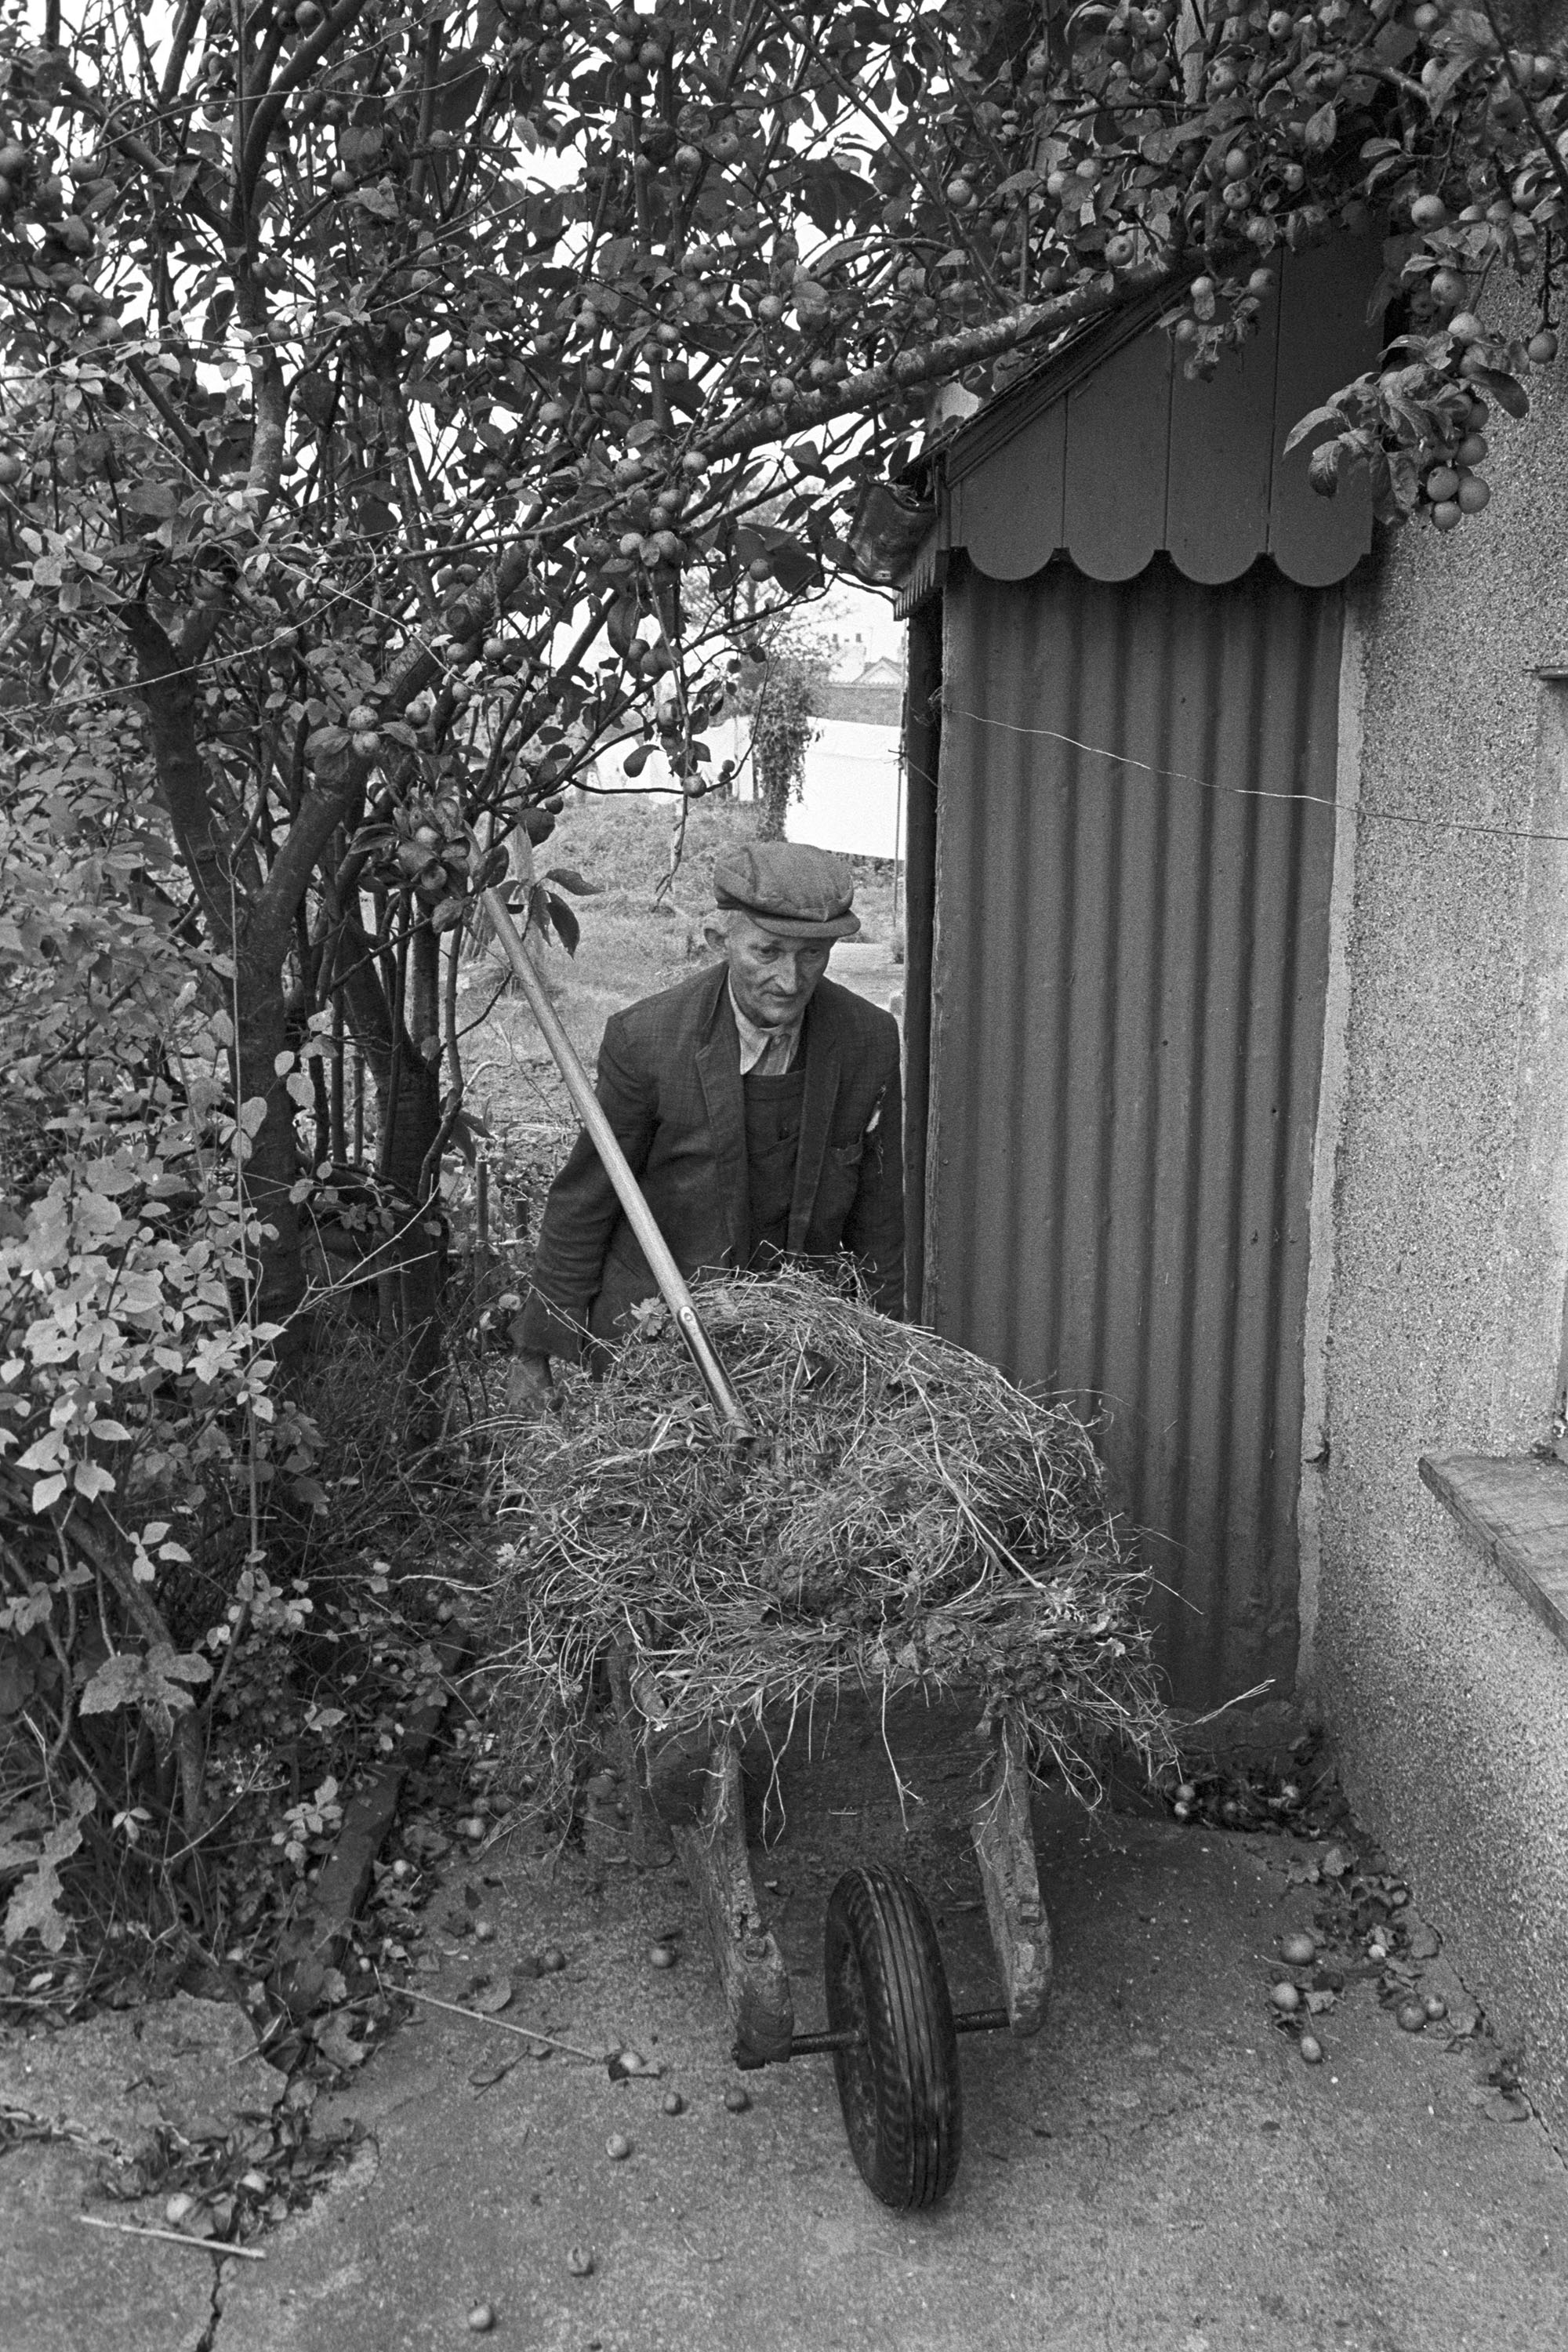 Farmer carrying muck to his garden in wheelbarrow. <br /> [Gordon Sanders pushing a wheelbarrow of muck or dung into his garden at Reynards Park, Ashreigney. He is passing a fruit tree, possibly a plum tree.]